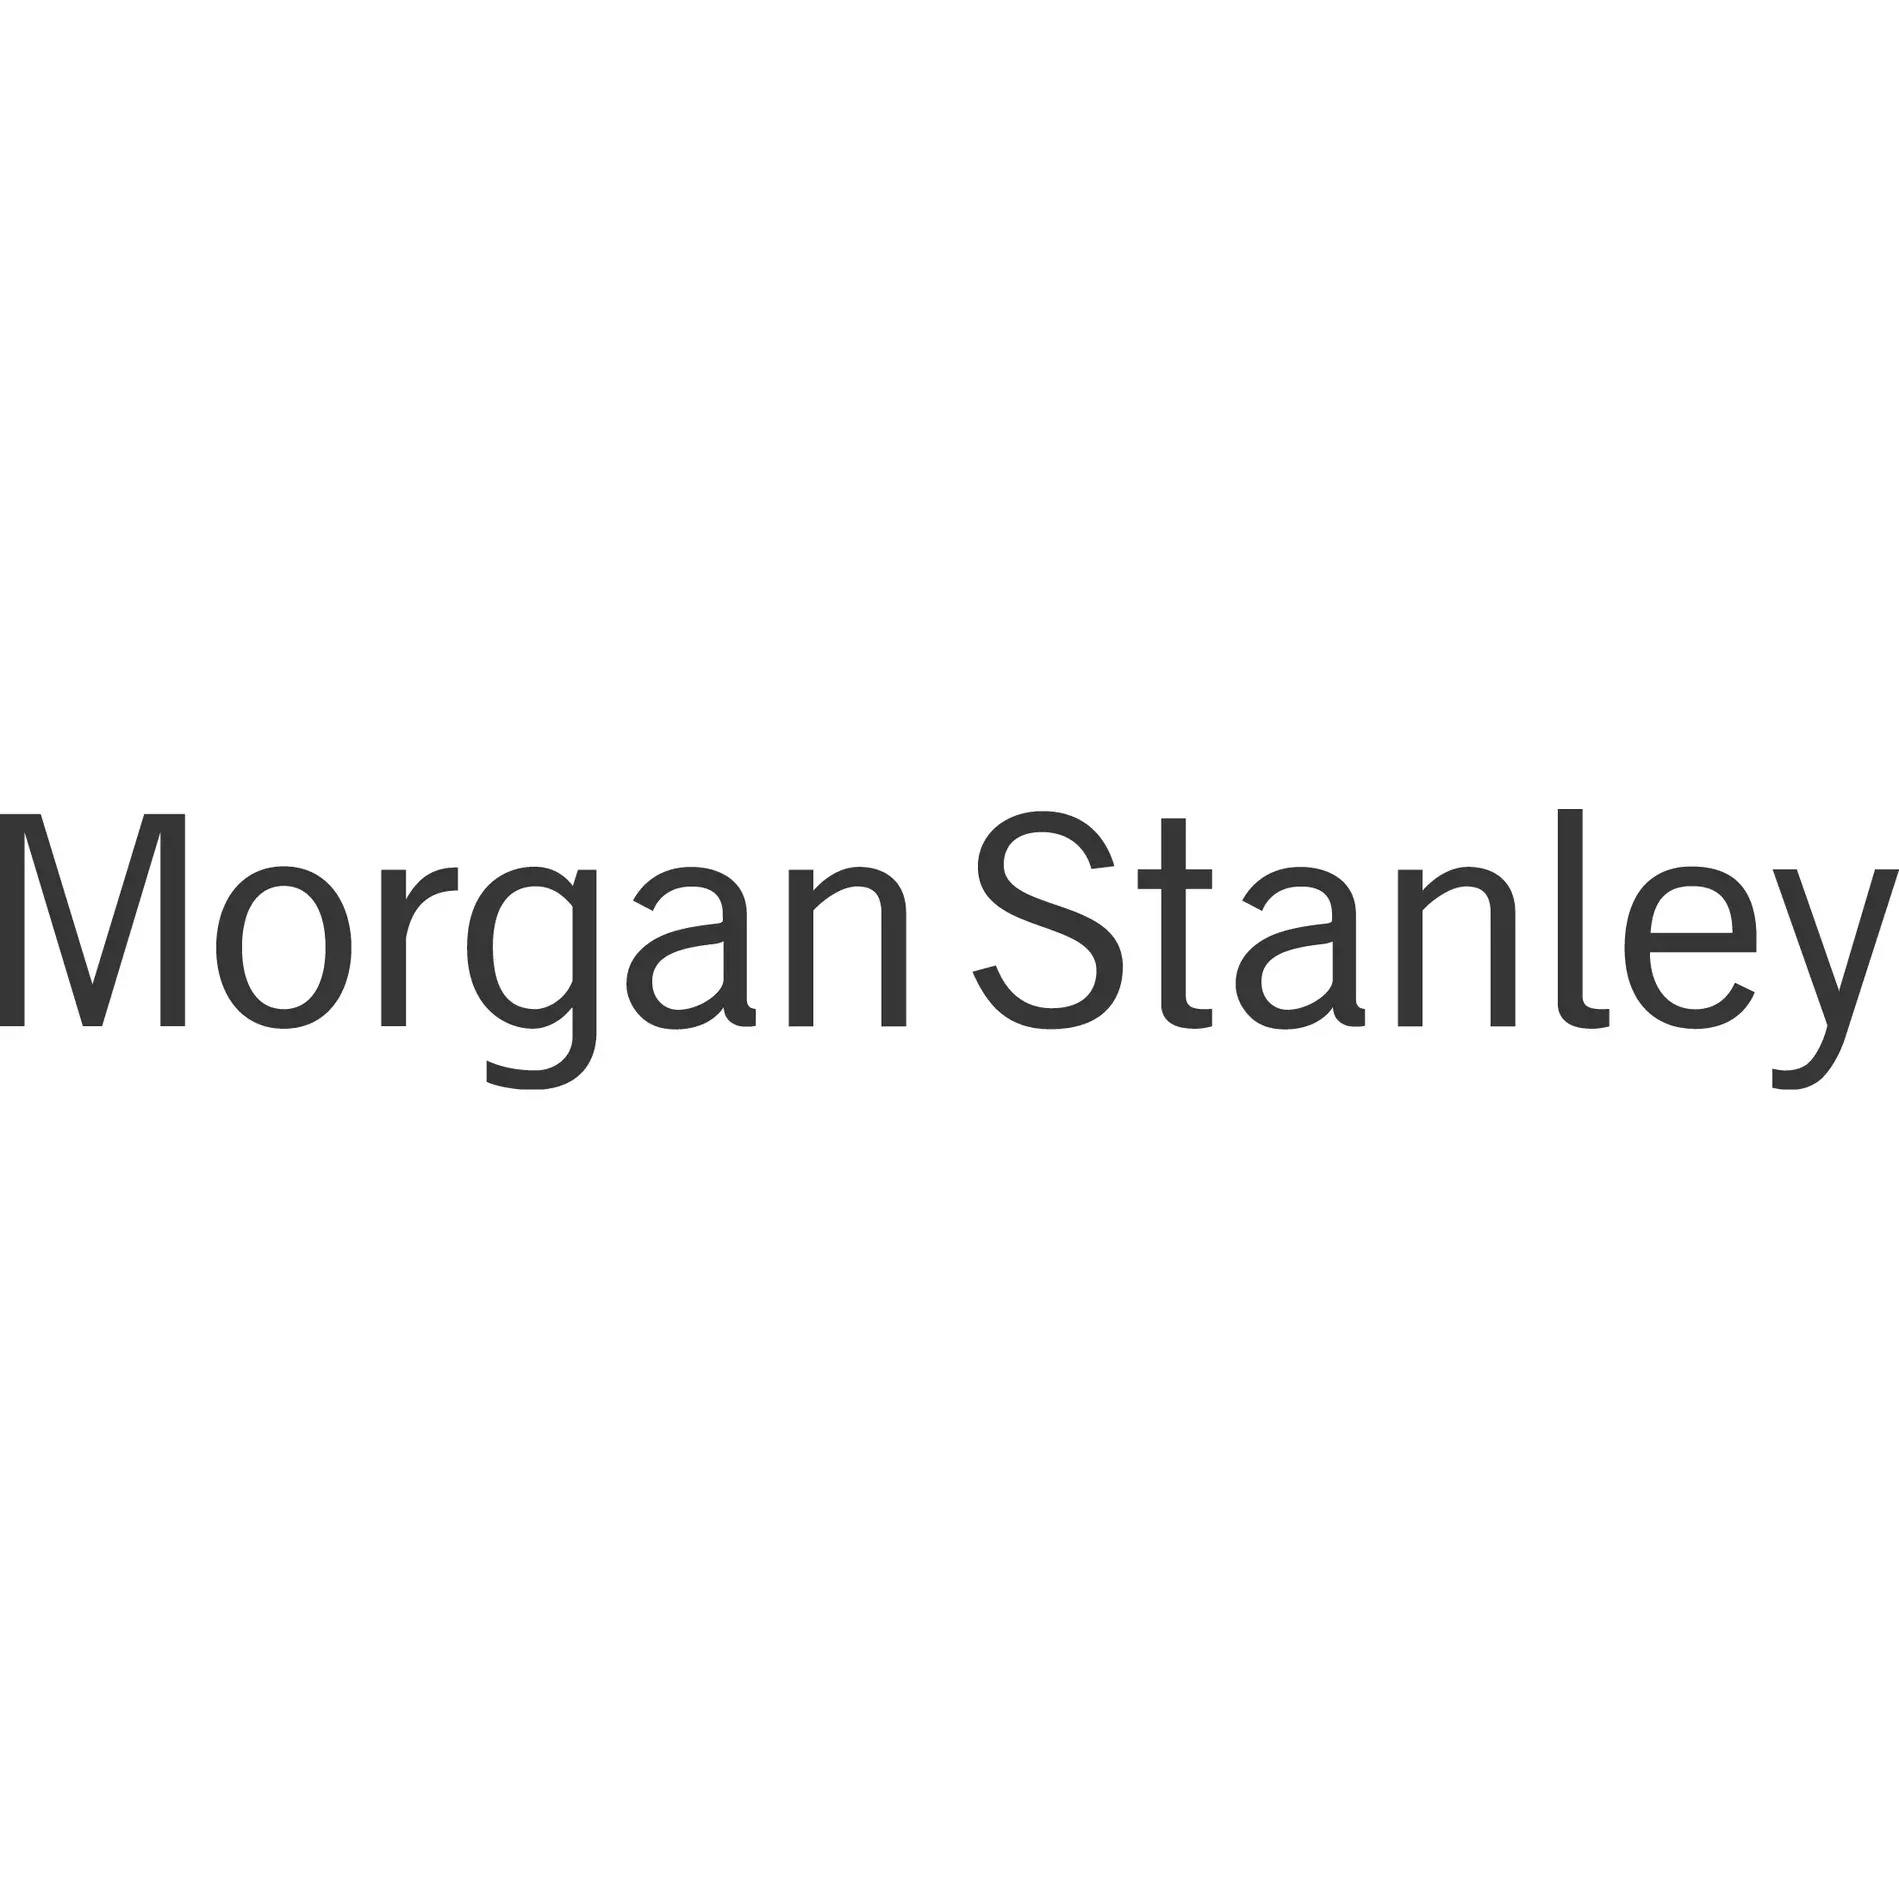 John P Wright - Morgan Stanley | Financial Advisor in Omaha,Nebraska